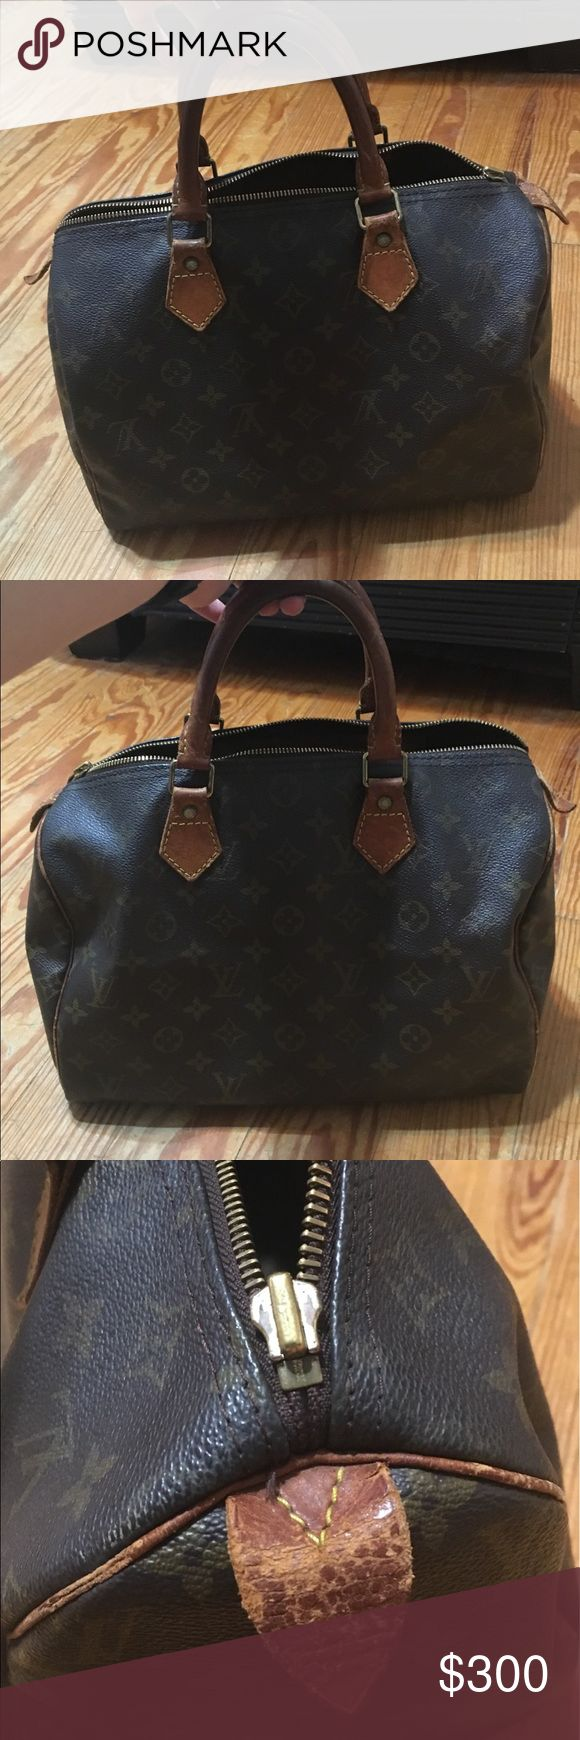 Louis Vuitton Speedy 30 Louis Vuitton speedy 30, authentic, bought it in hopes of revamping but haven't gotten around to it. Great bag, just needs some TLC. Code VI 1982 Louis Vuitton Bags Totes